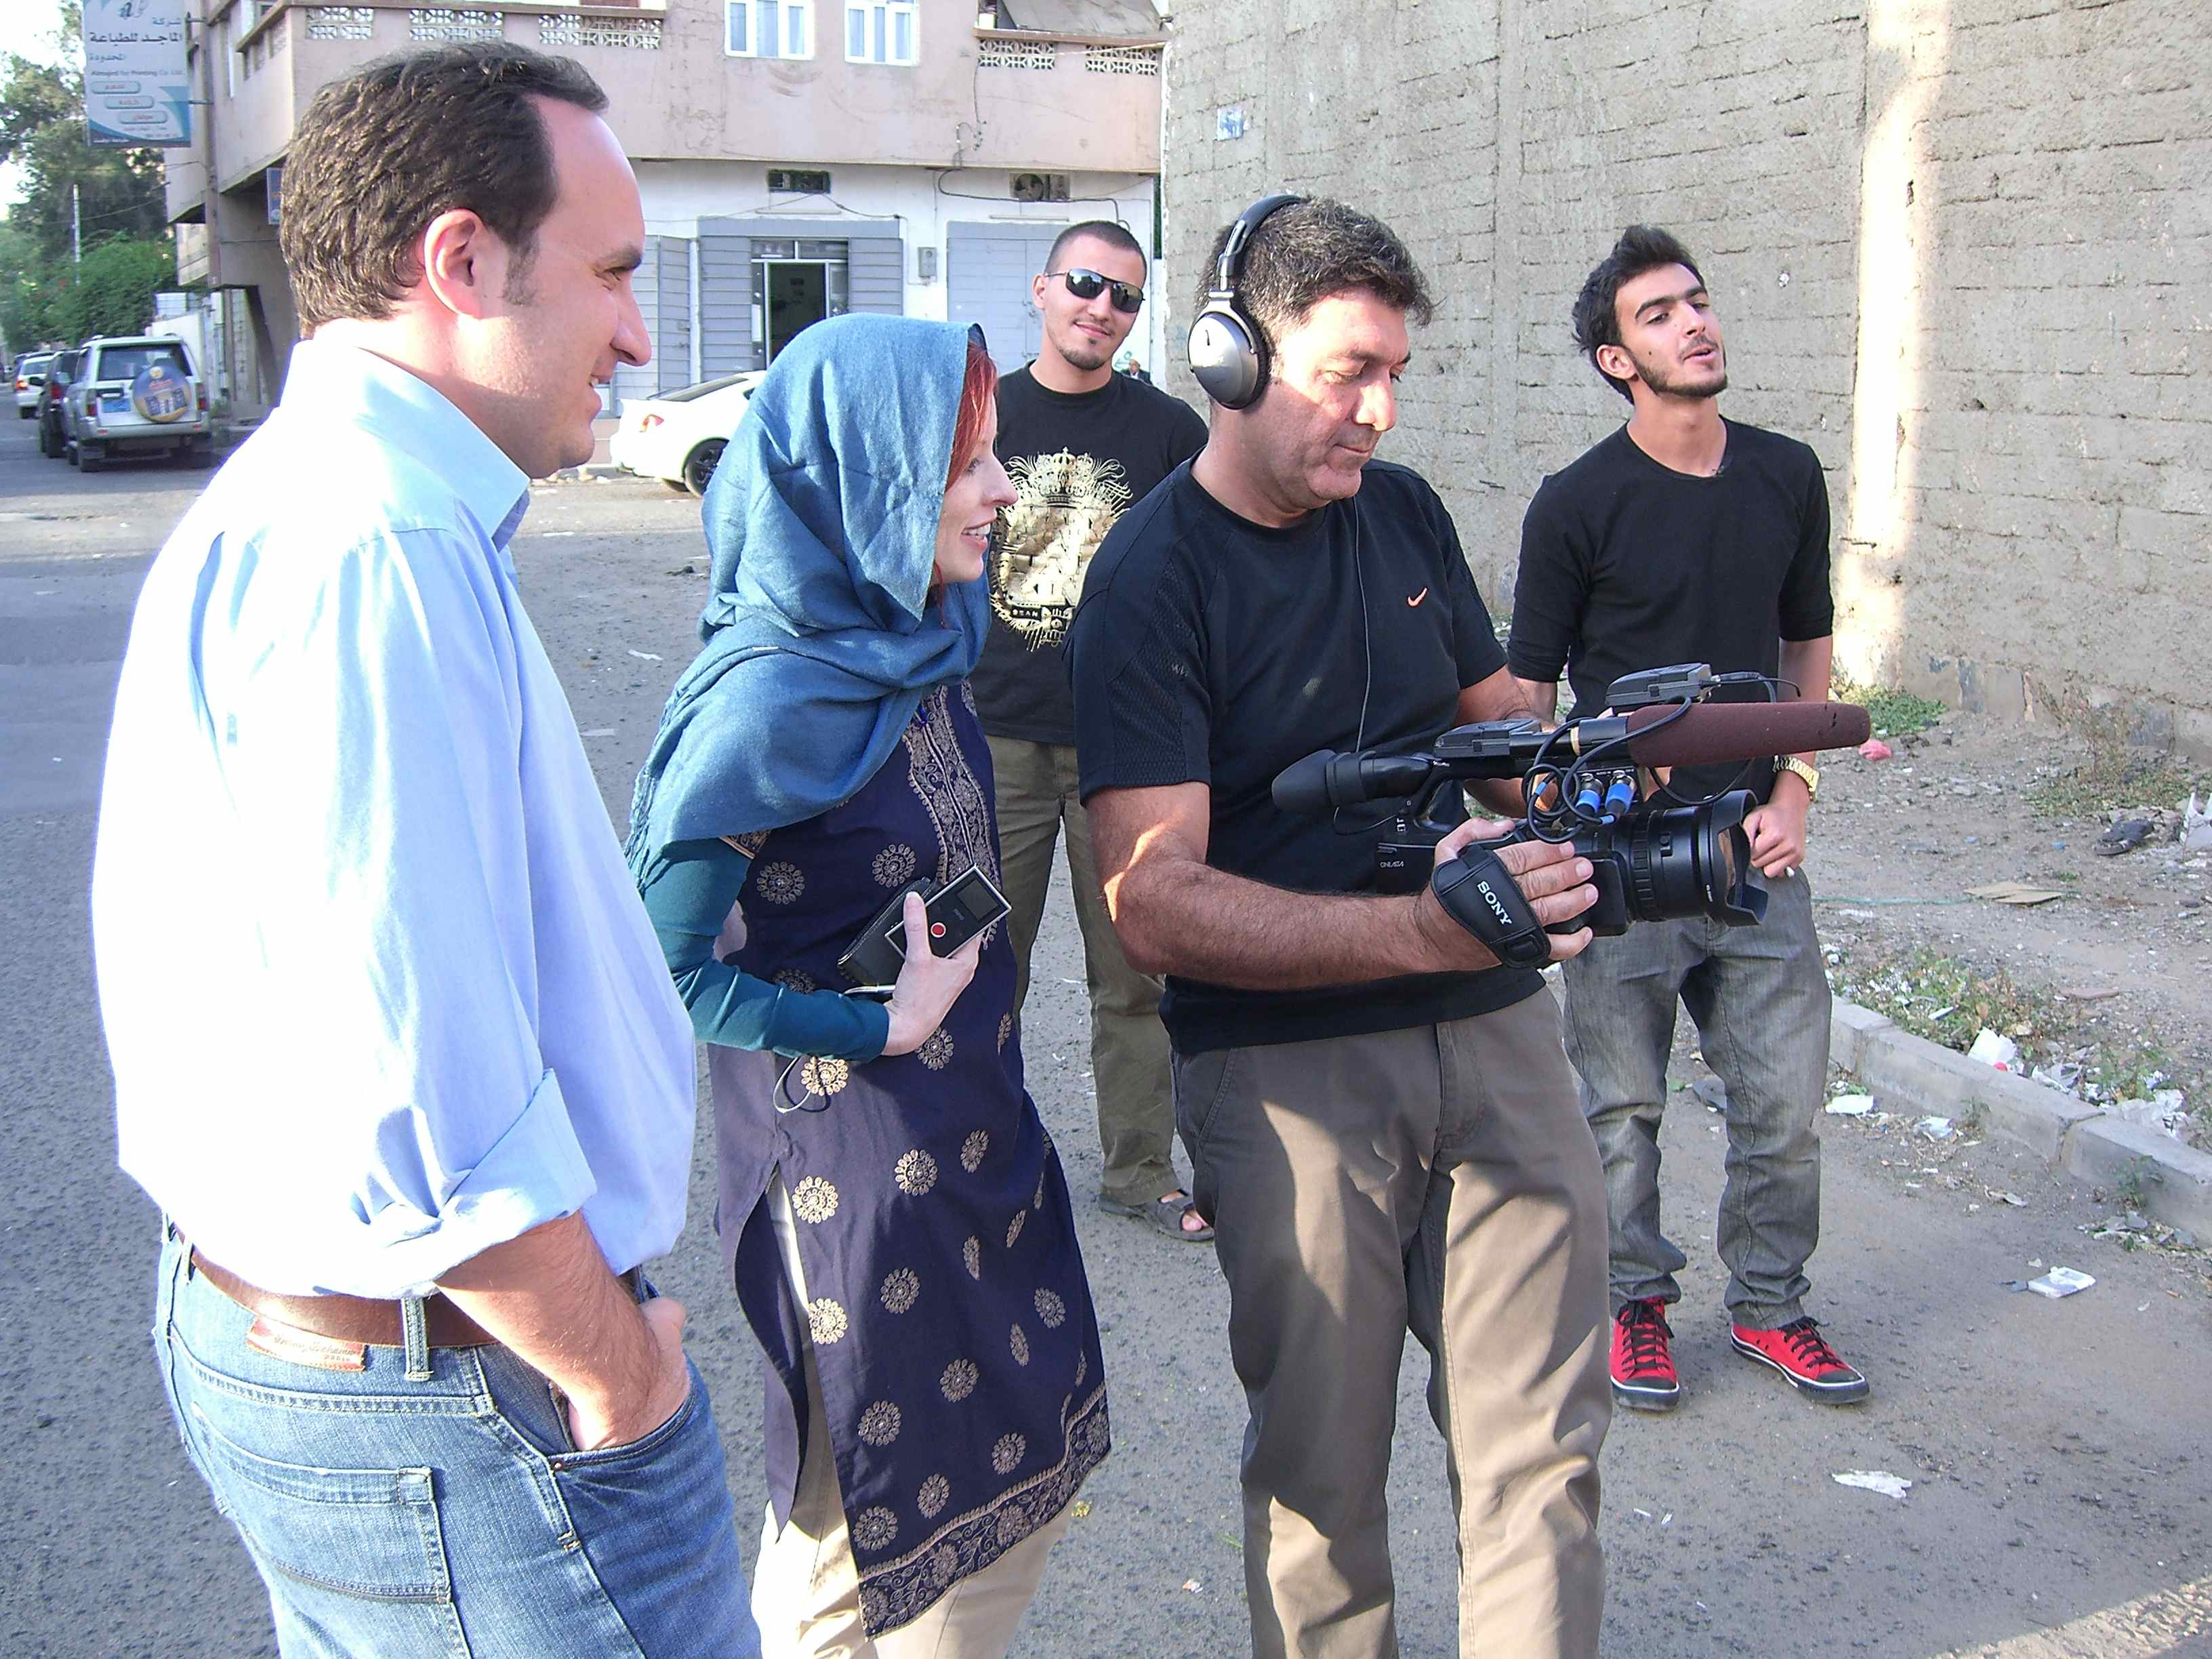 Photo CNN/Dane Kenny. Mohammed, Farhad and Gena shooting outside the Yemen Music House that houses a recording studio.